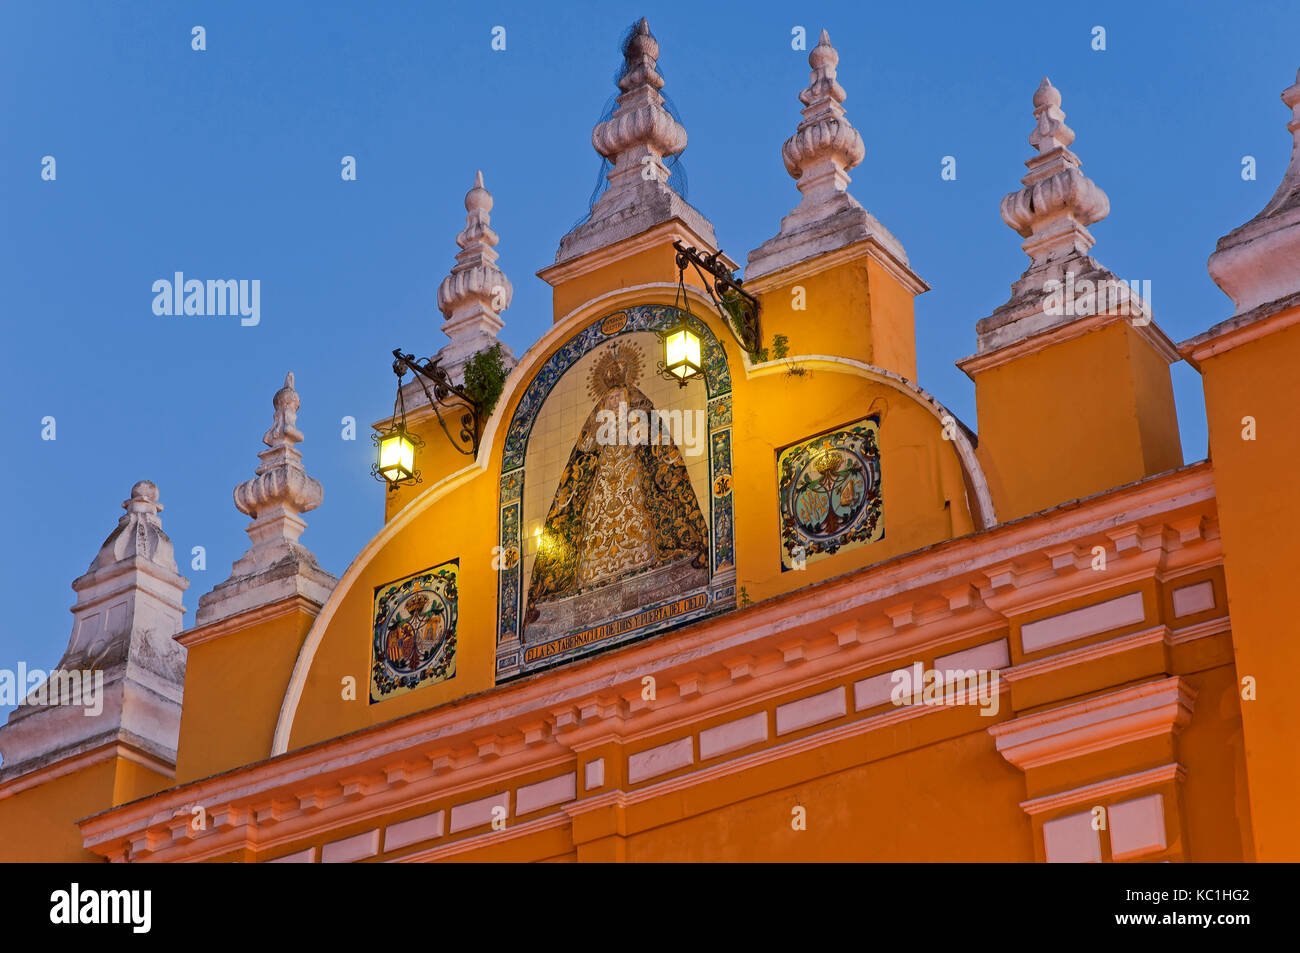 Arch of the Macarena-detail, Seville, Region of Andalusia, Spain, Europe - Stock Image